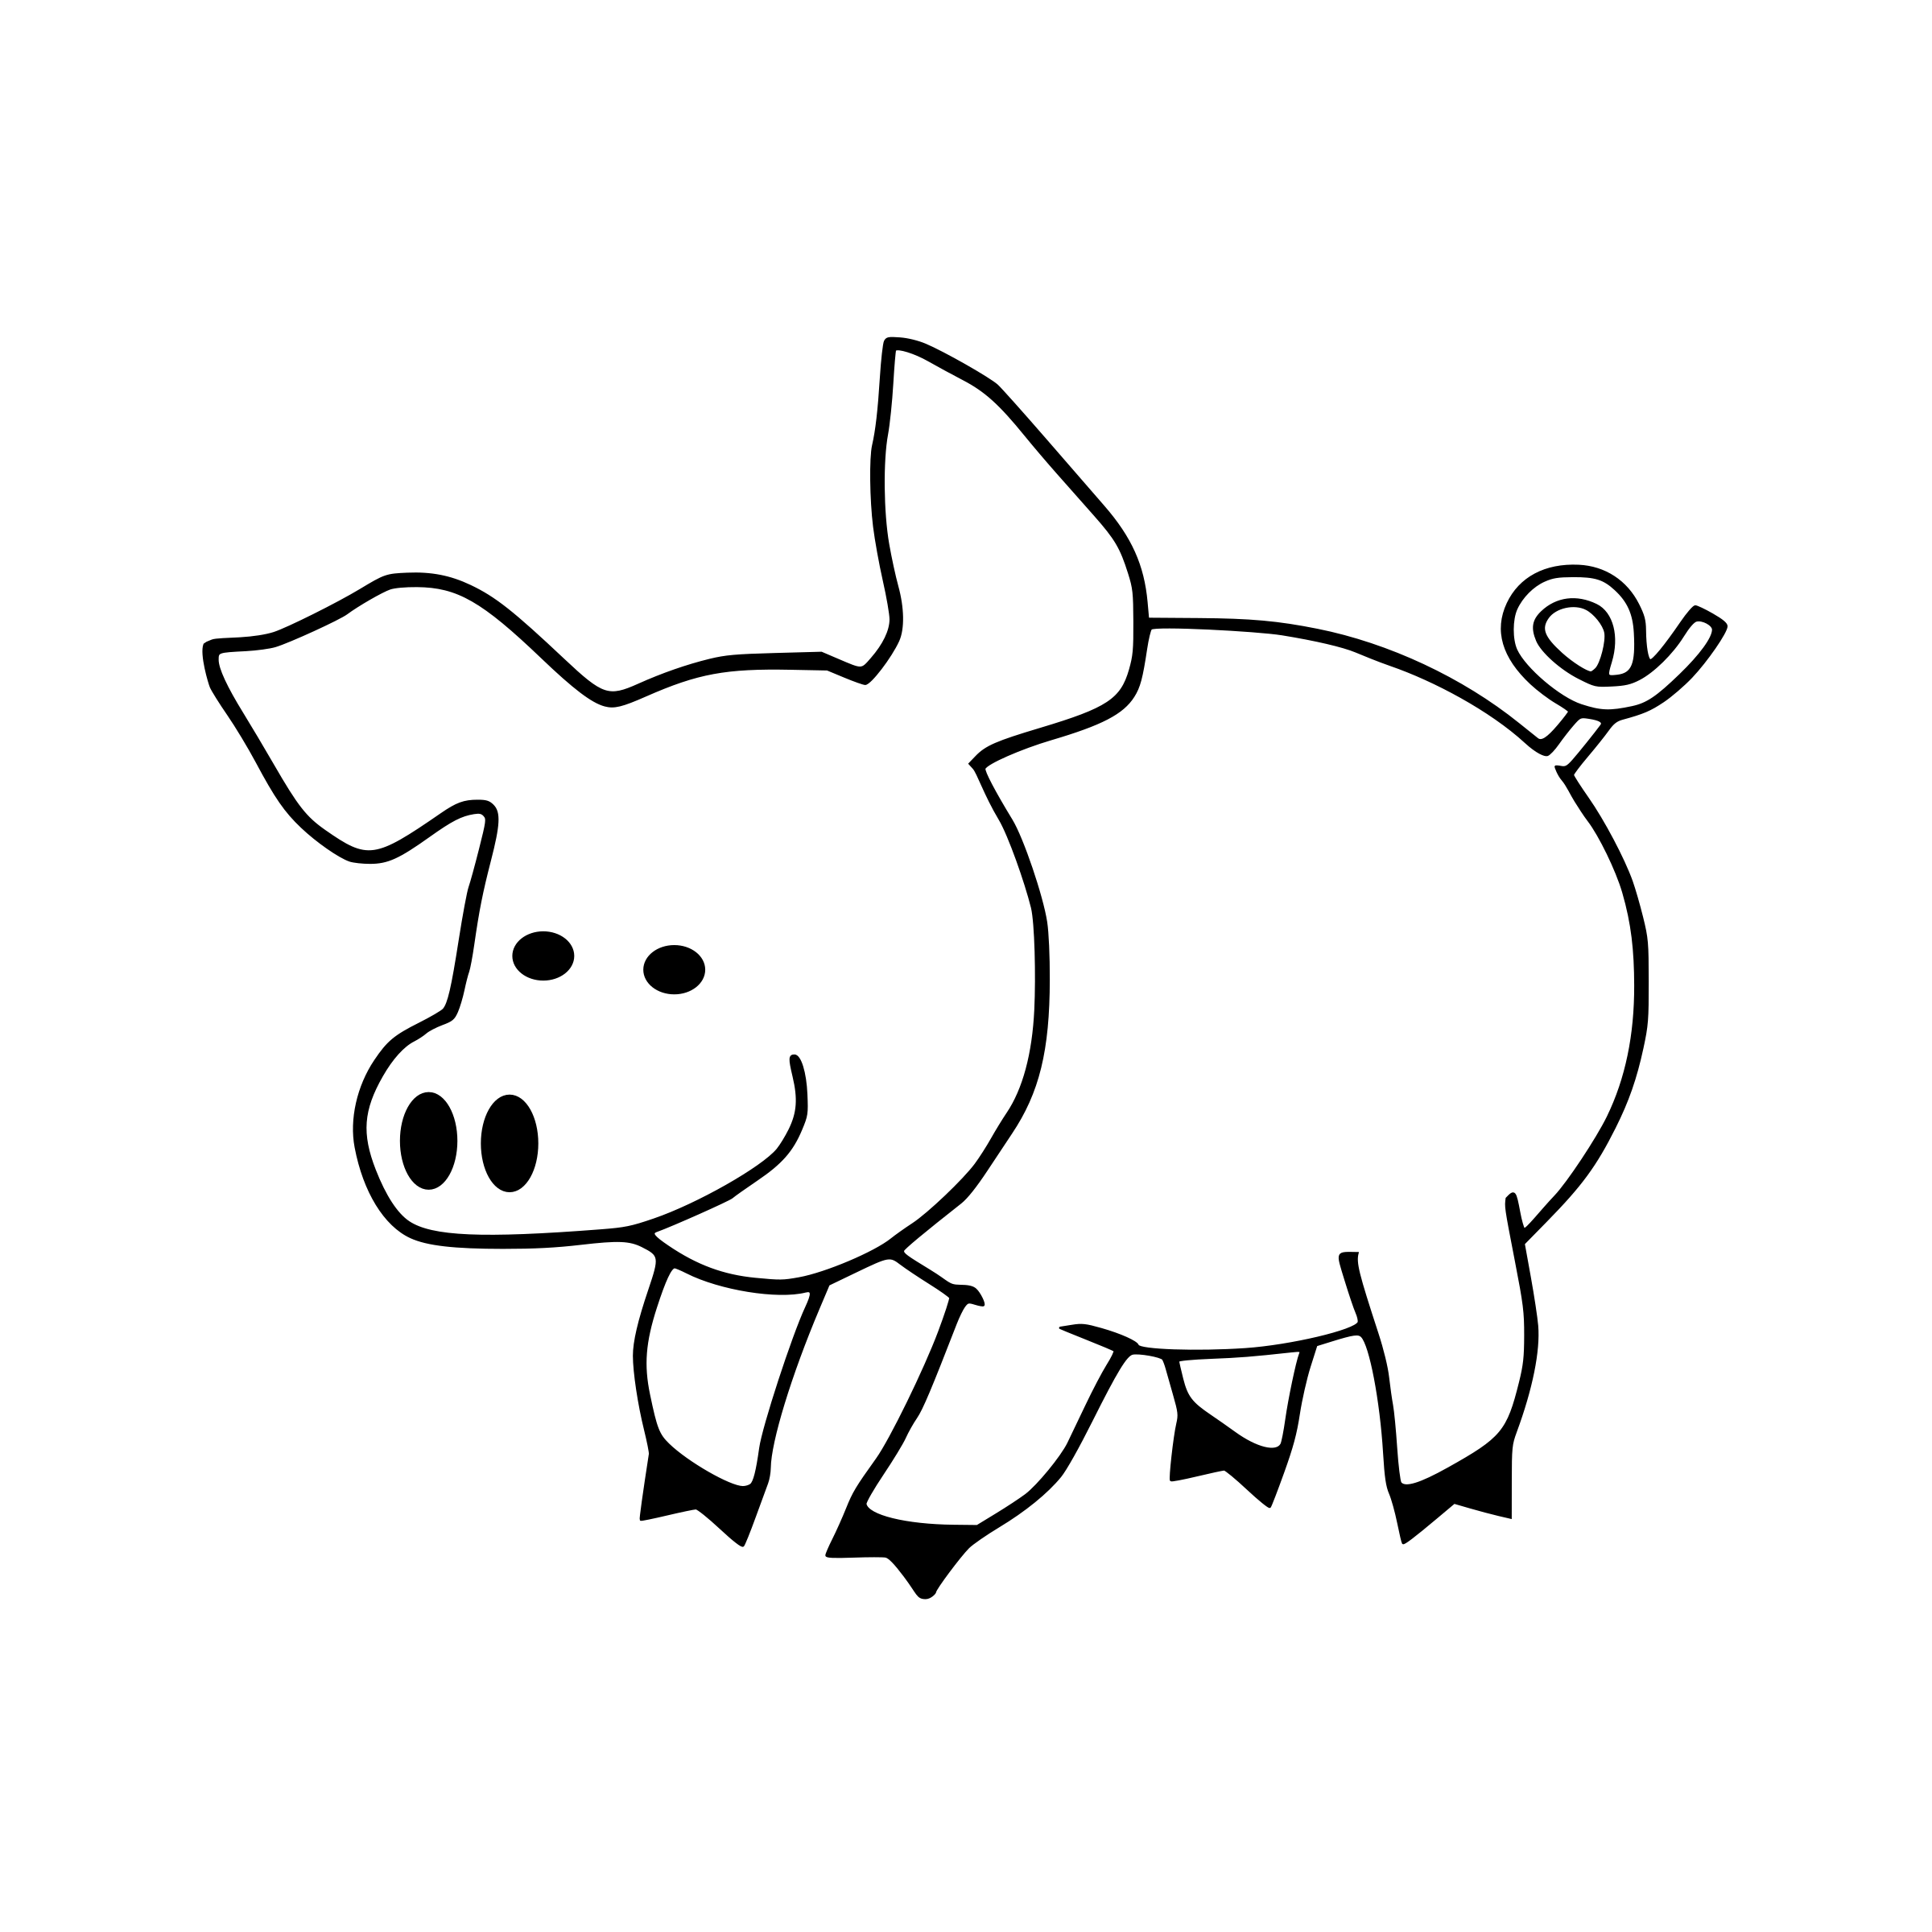 Pigs Clipart Baboy Pigs Baboy Transparent Free For